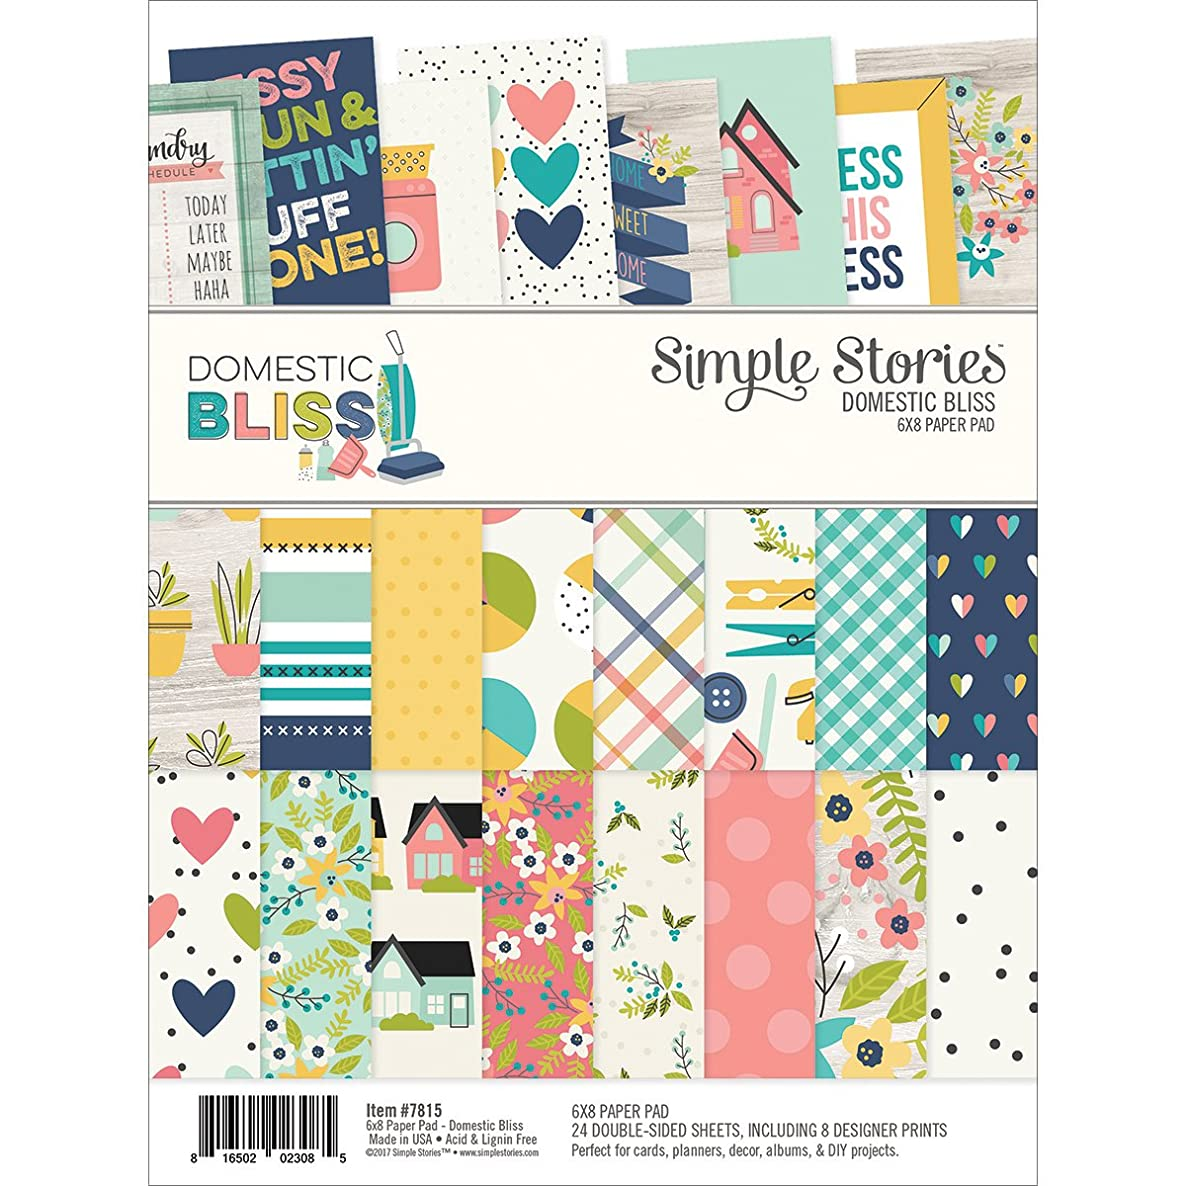 Simple Stories Domestic Bliss 6x8 Paper Pad